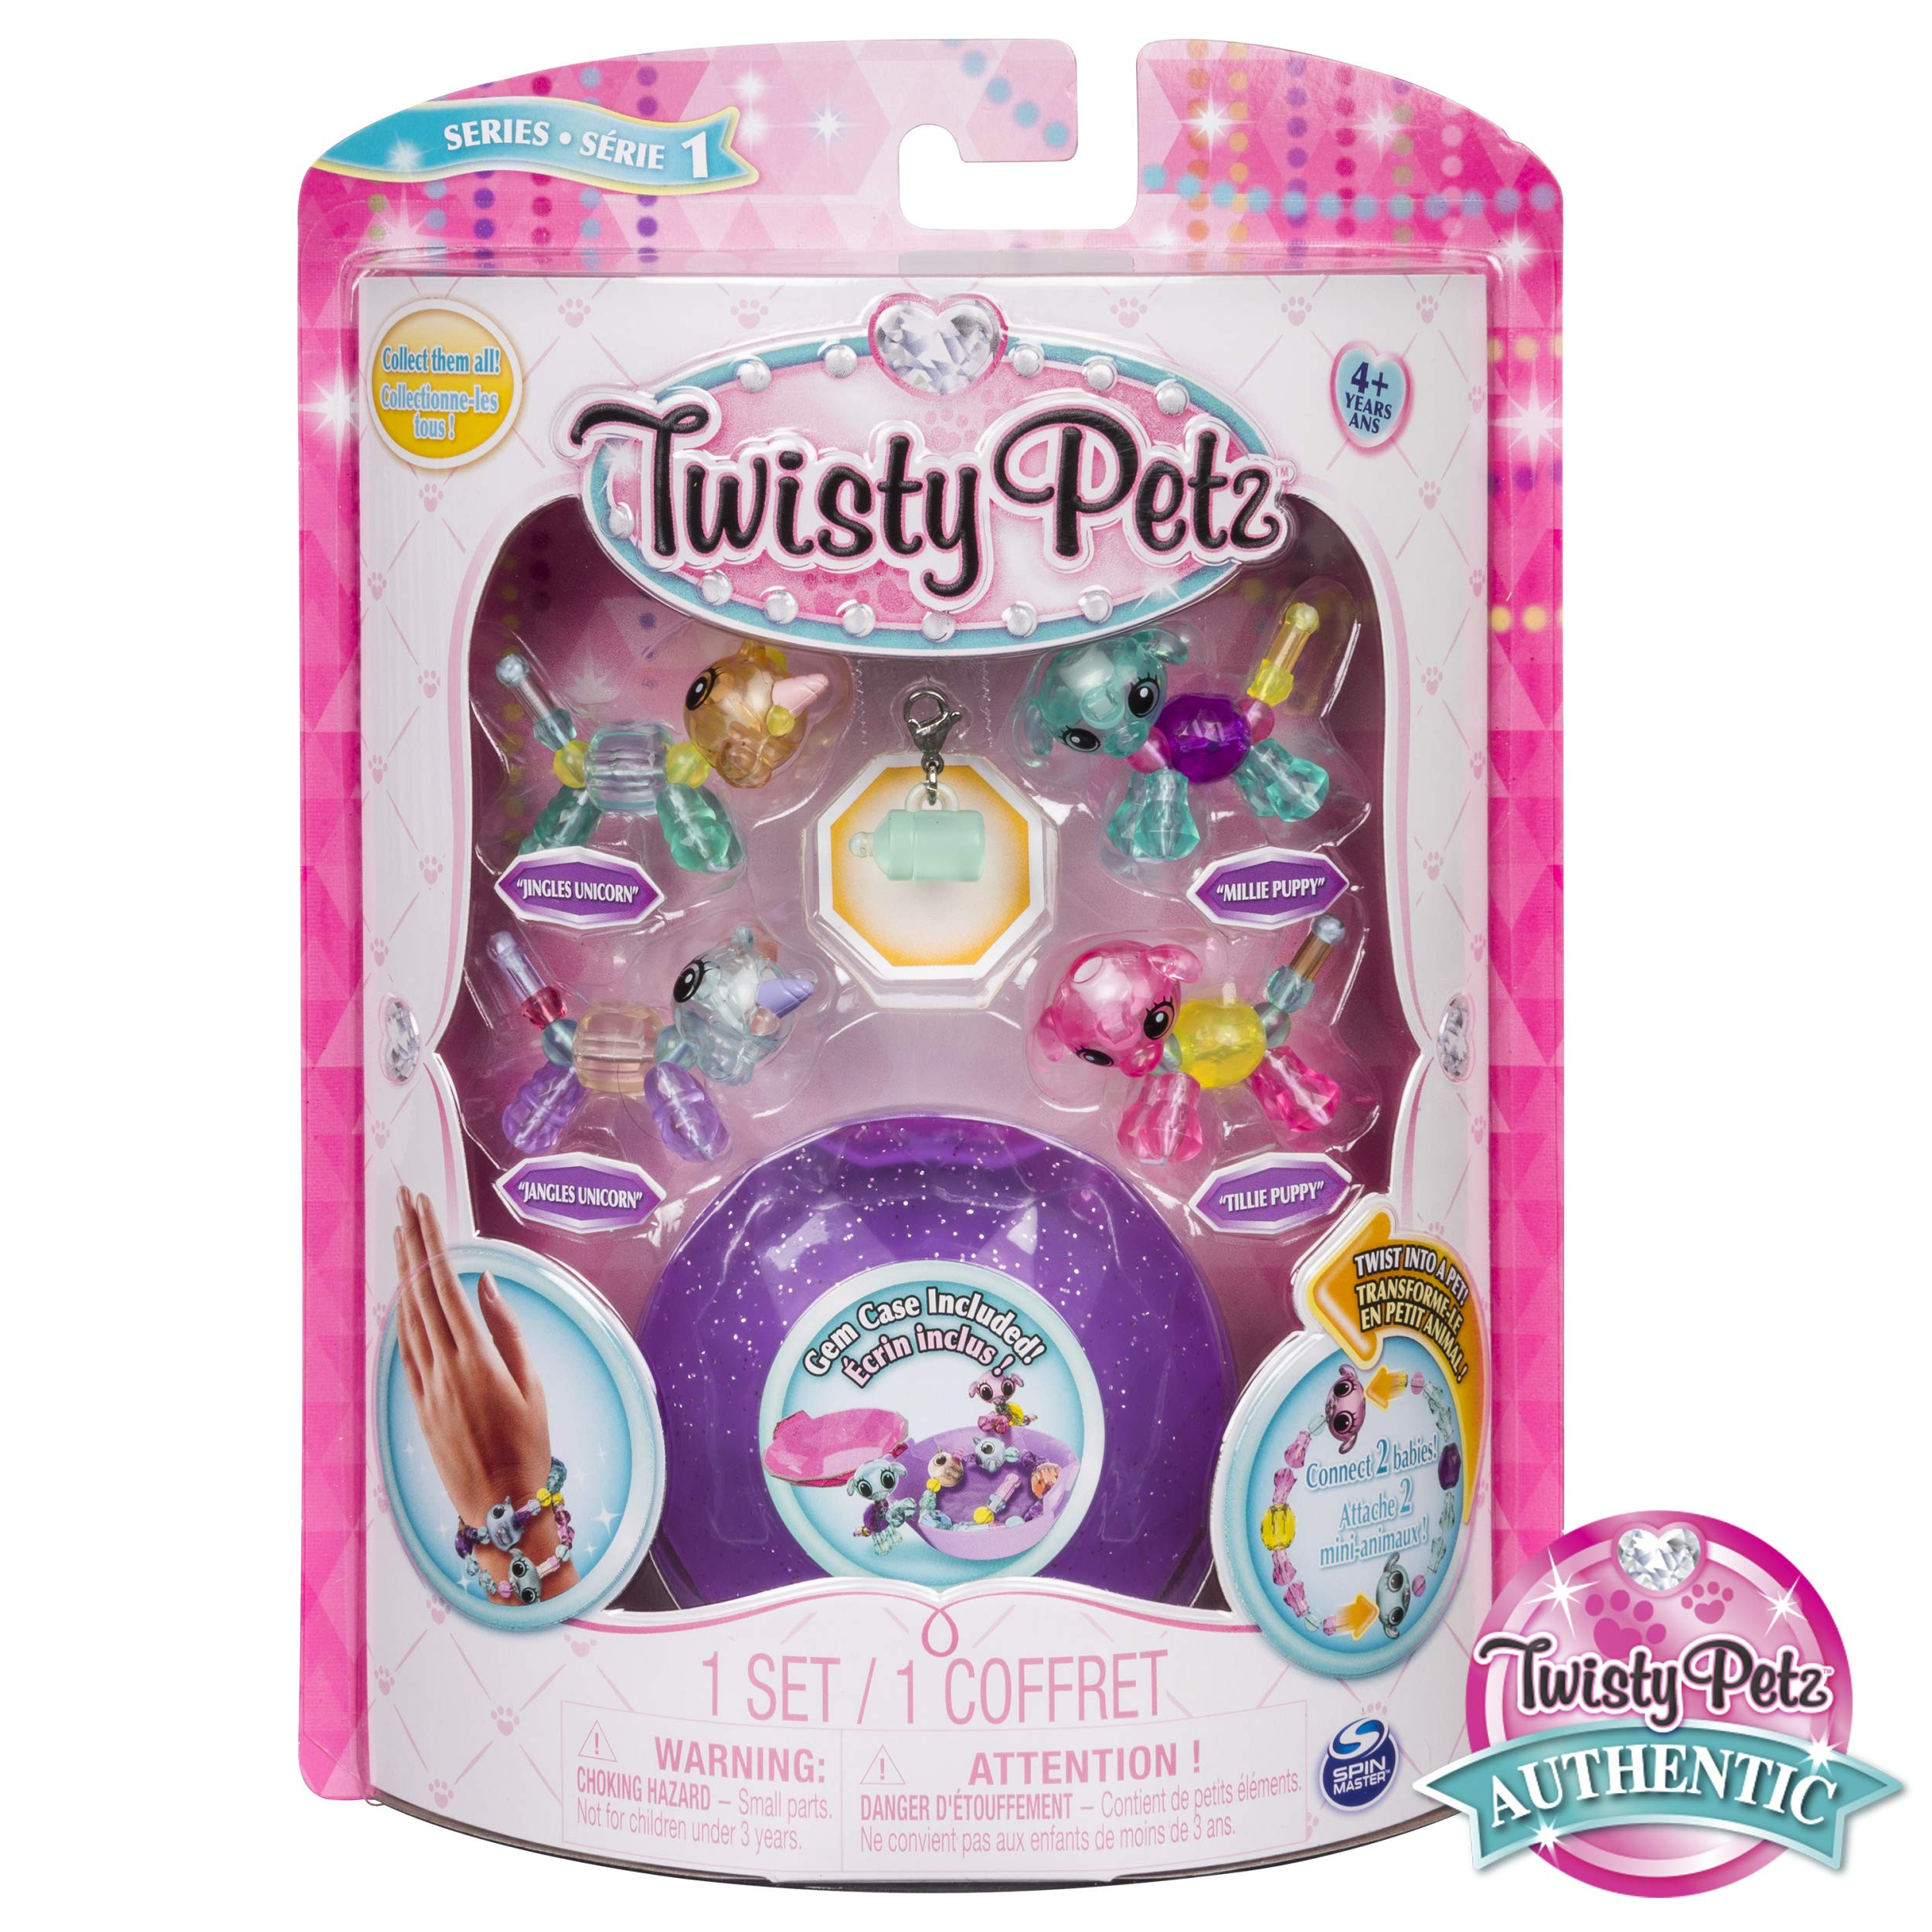 Twisty Petz Babies Collectible Bracelet Set, Unicorns & Puppies 4-Pack